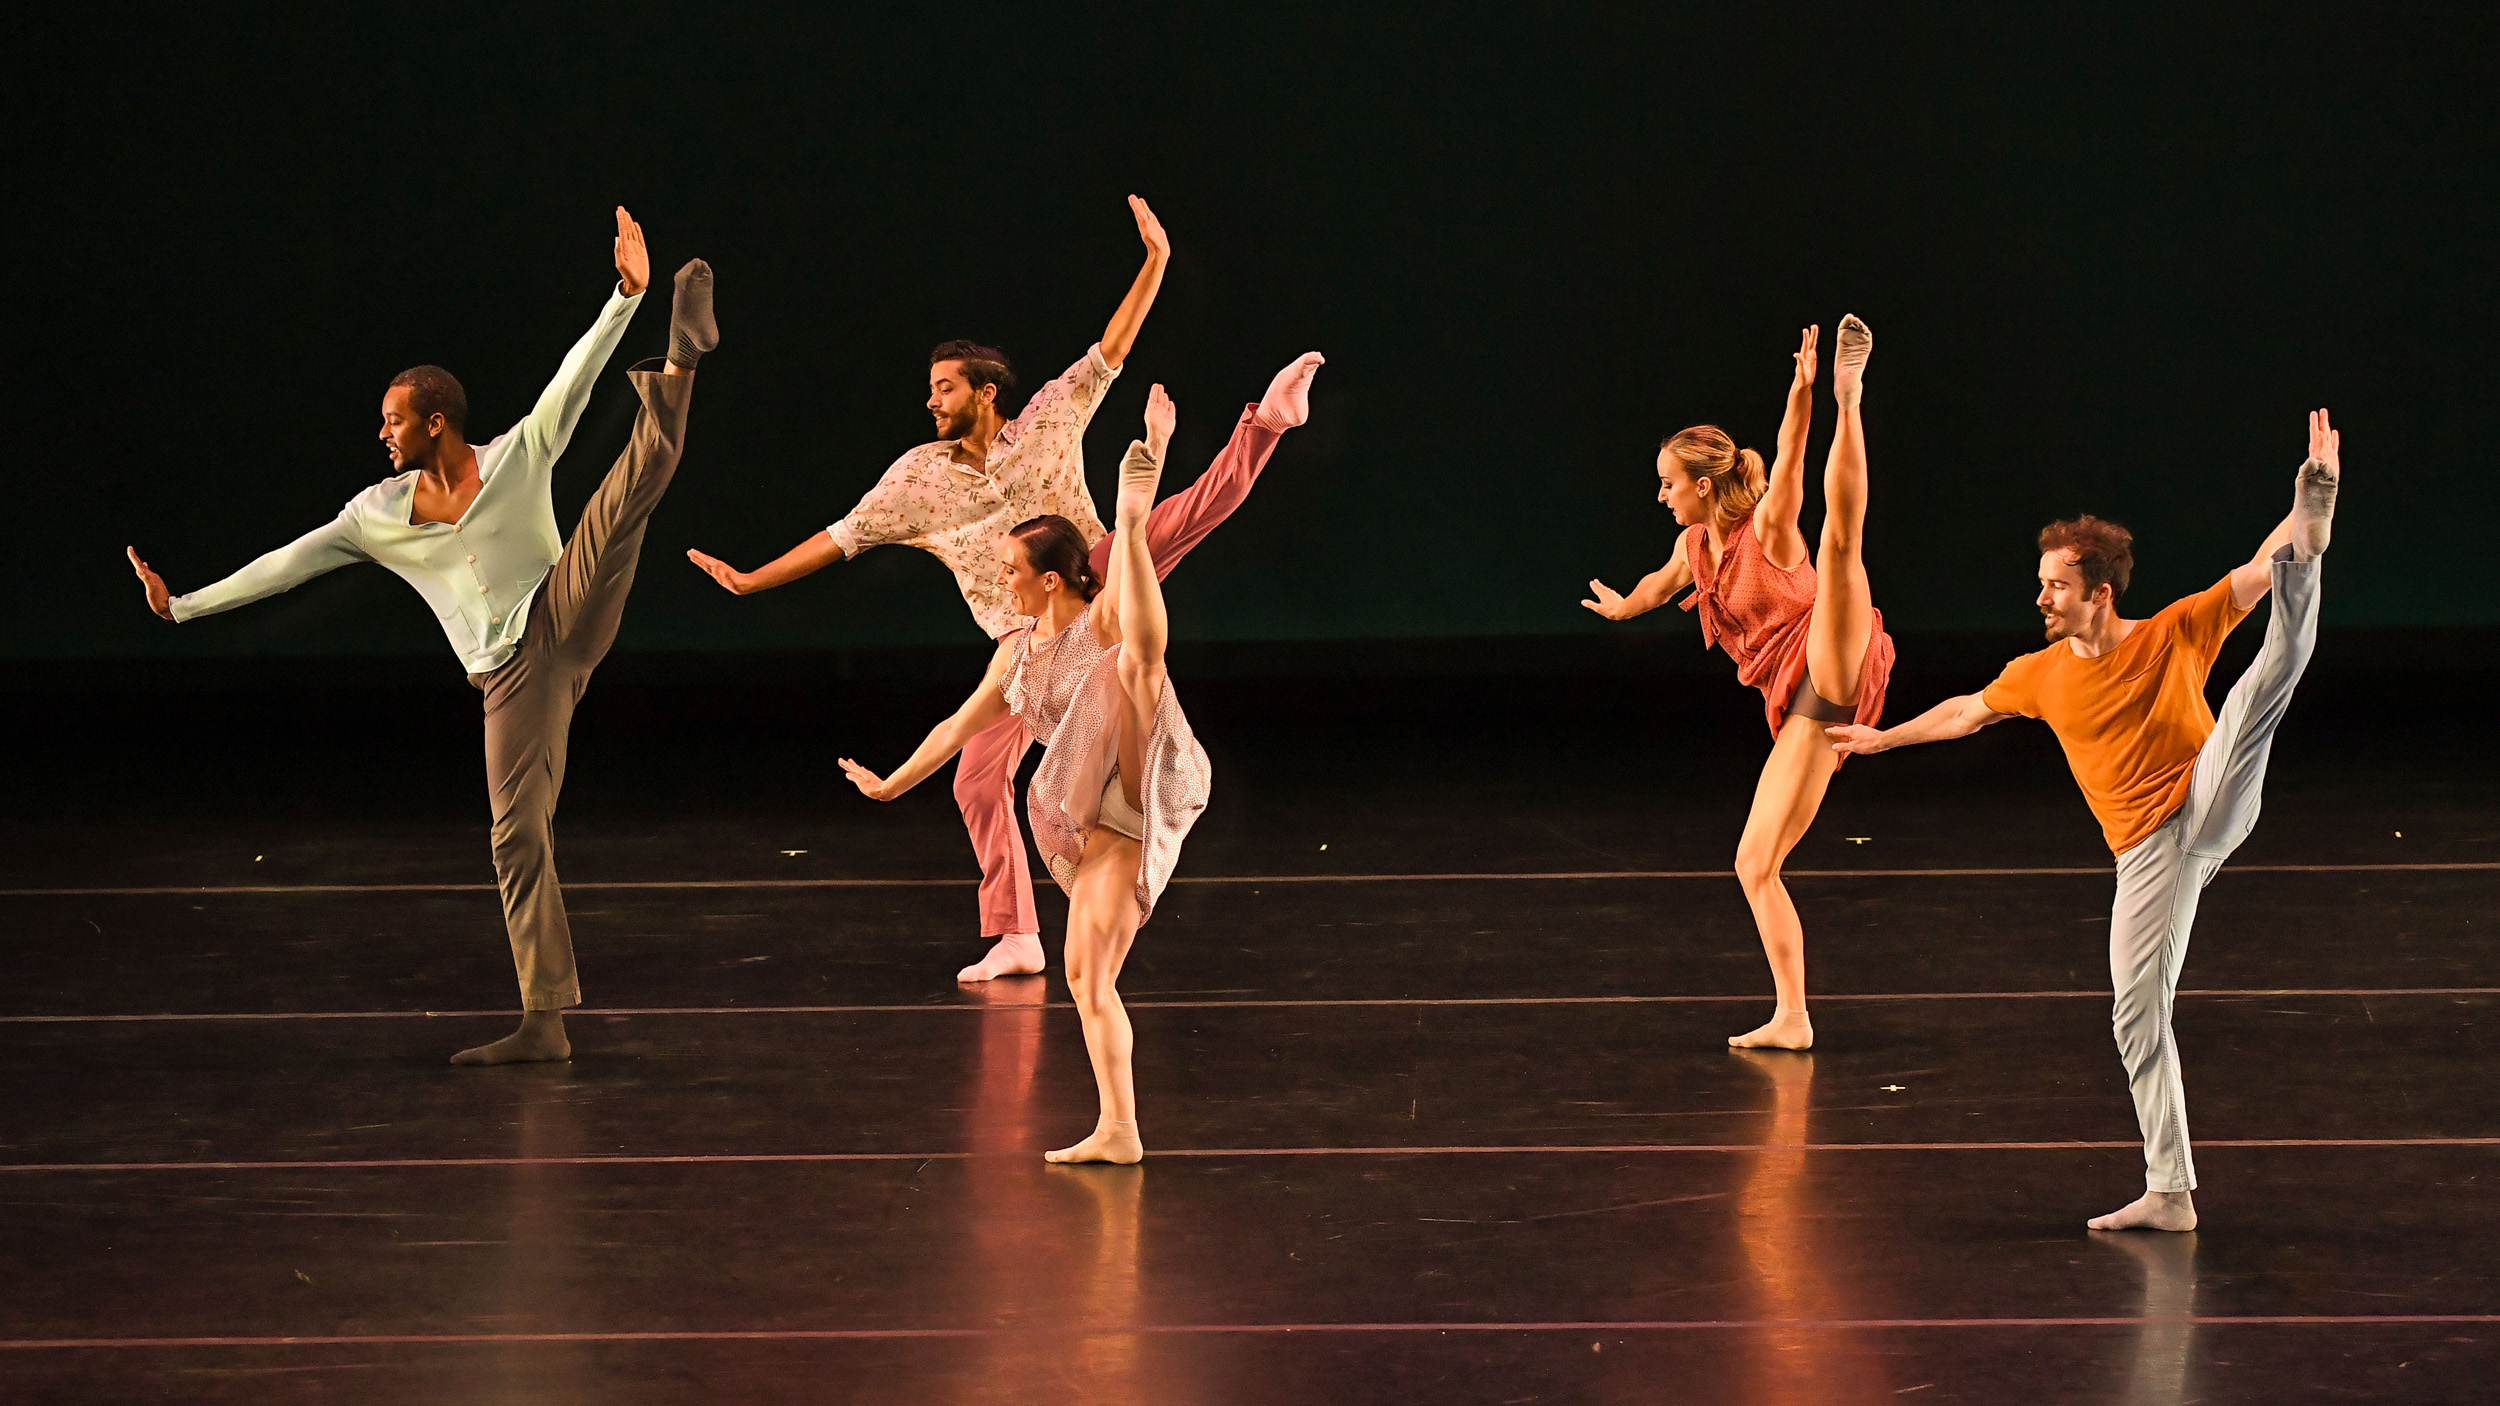 BODYTRAFFIC performing at the Wallis Annenberg Center for the Performing Arts May 31, 2018. o2Joy. Choreography: Richard Siegal. Jamal White, Joseph Davis, Tina Finkelman Berkett, Natalie Leibert, Guzmán Rosado. PHOTO CREDIT: Rob Latour.